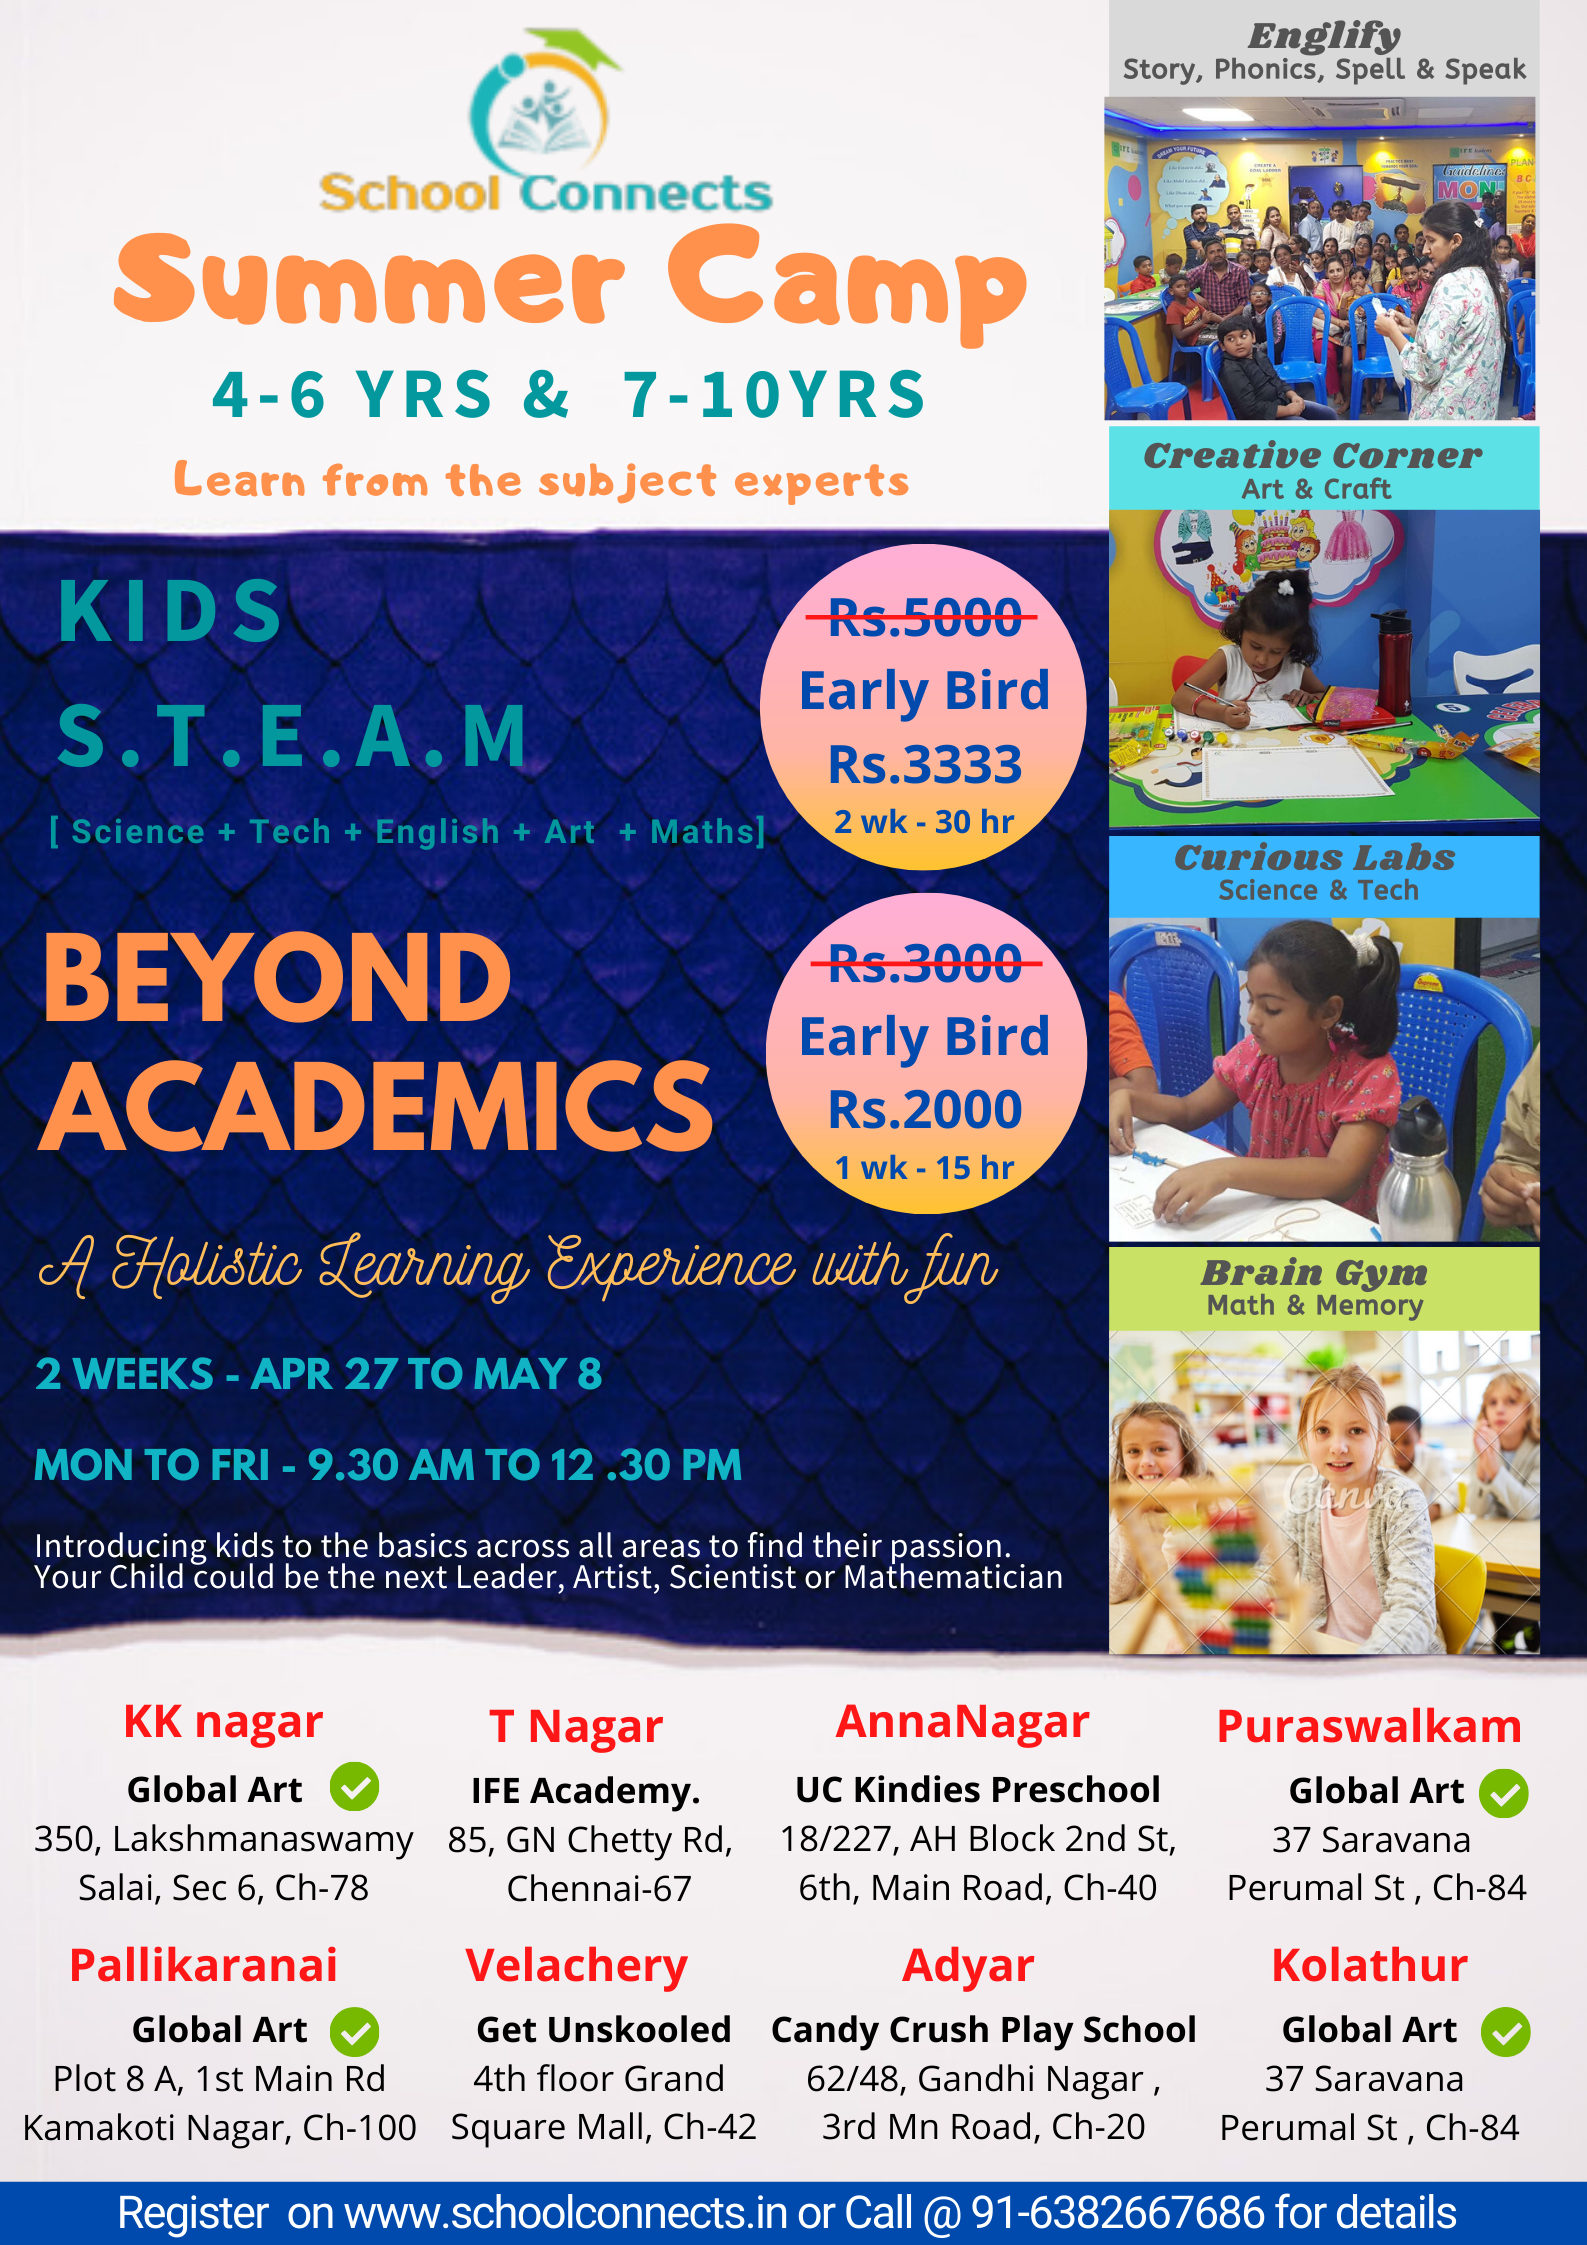 Beyond Academics - Summer Camp by SchoolConnects